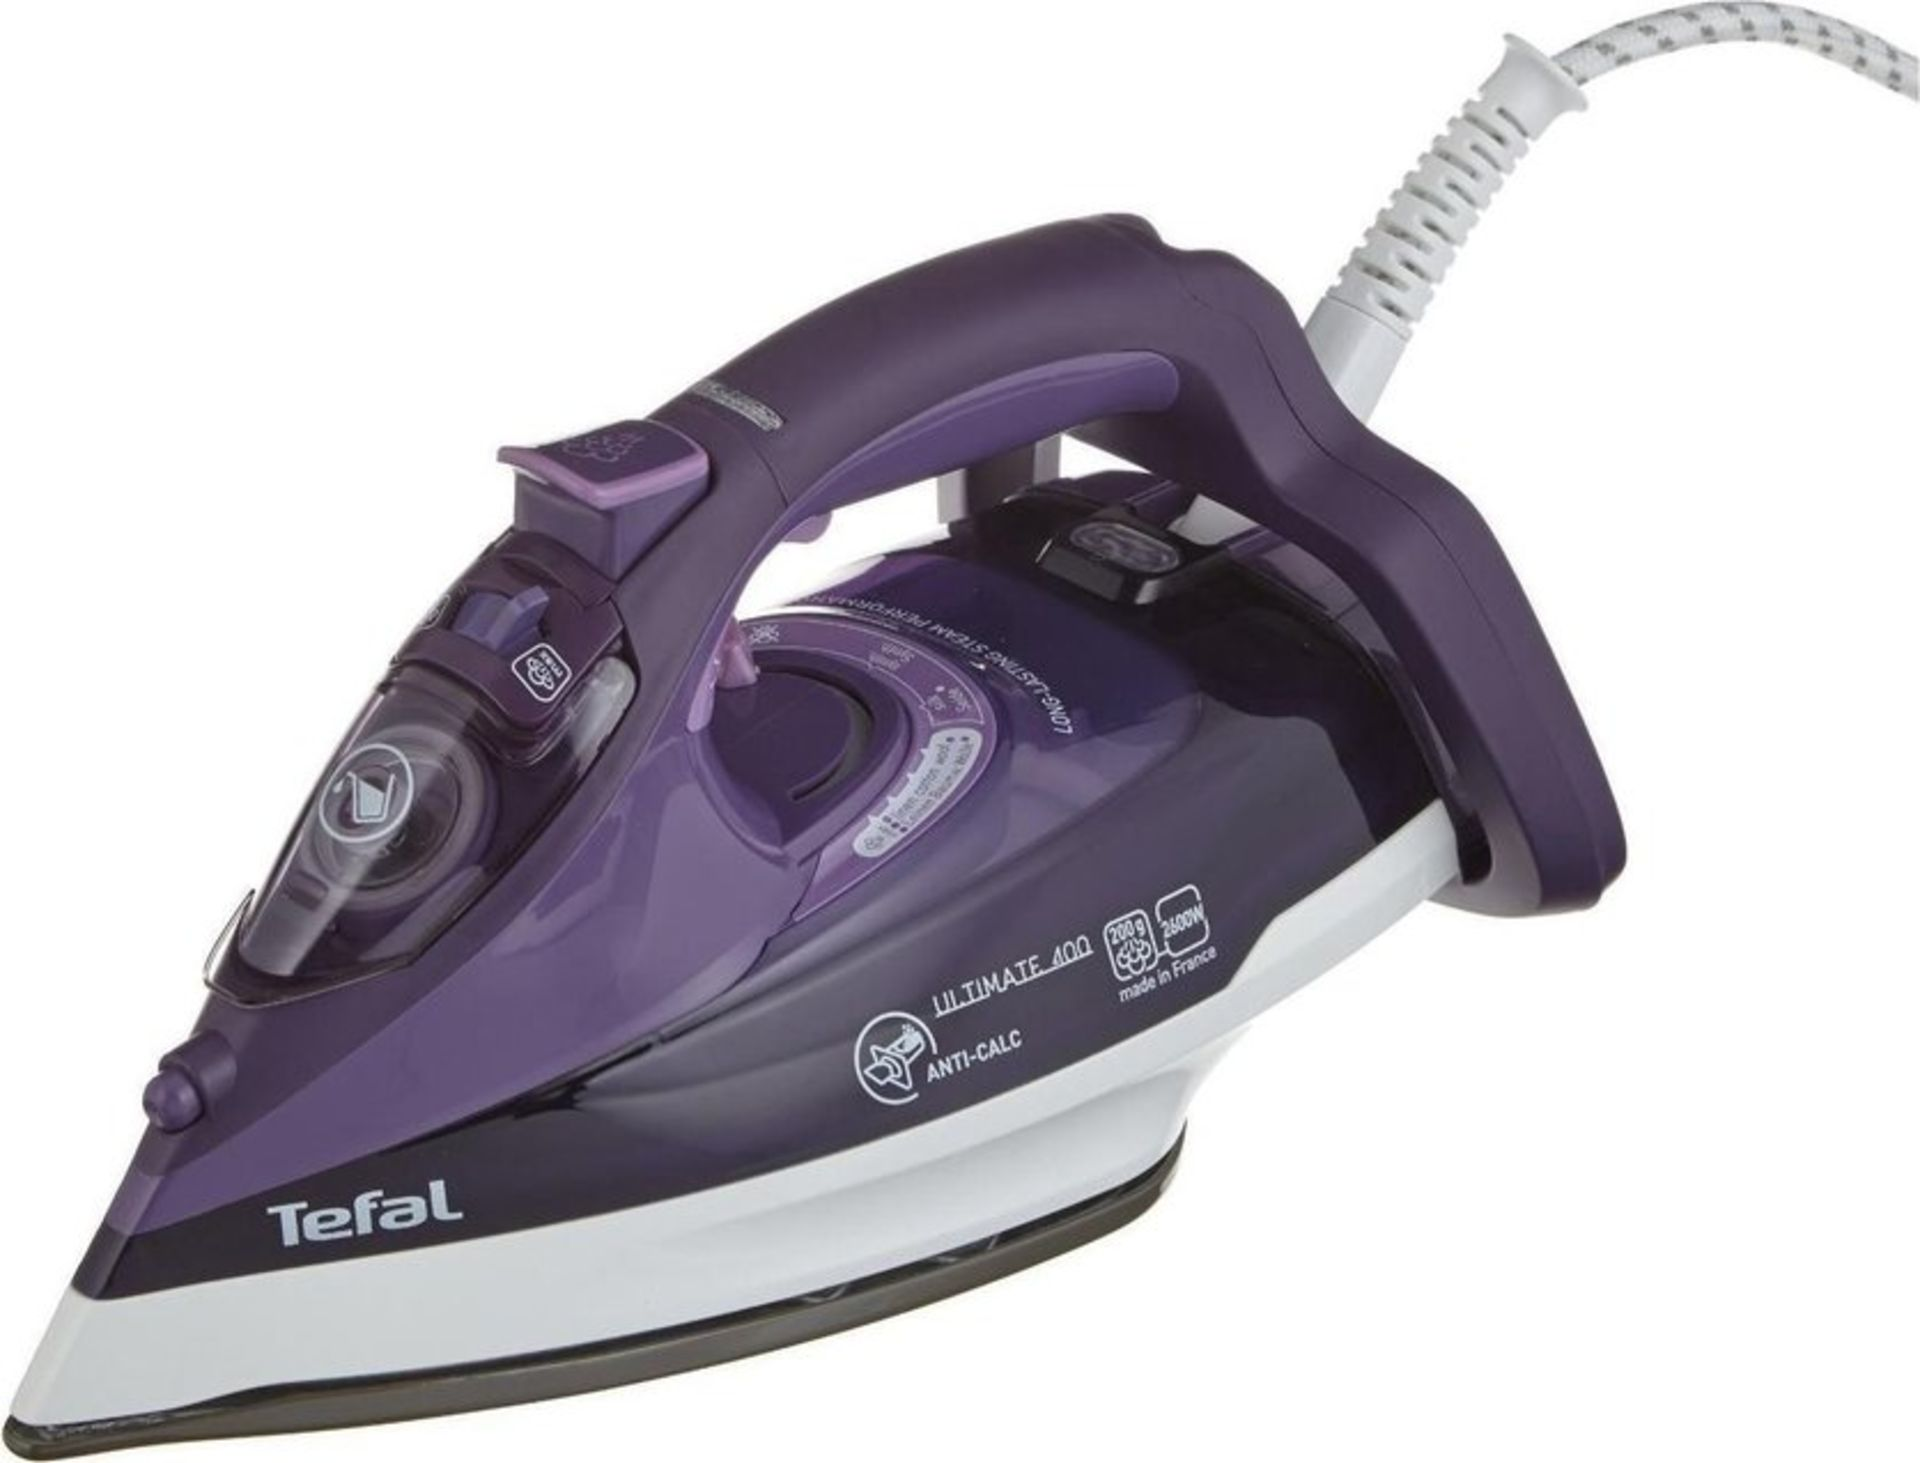 Lot 10086 - V Brand New Tefal Ultimate Anti Calc 400 2600W Turbo Steam Iron - Glide Protect - Security On/